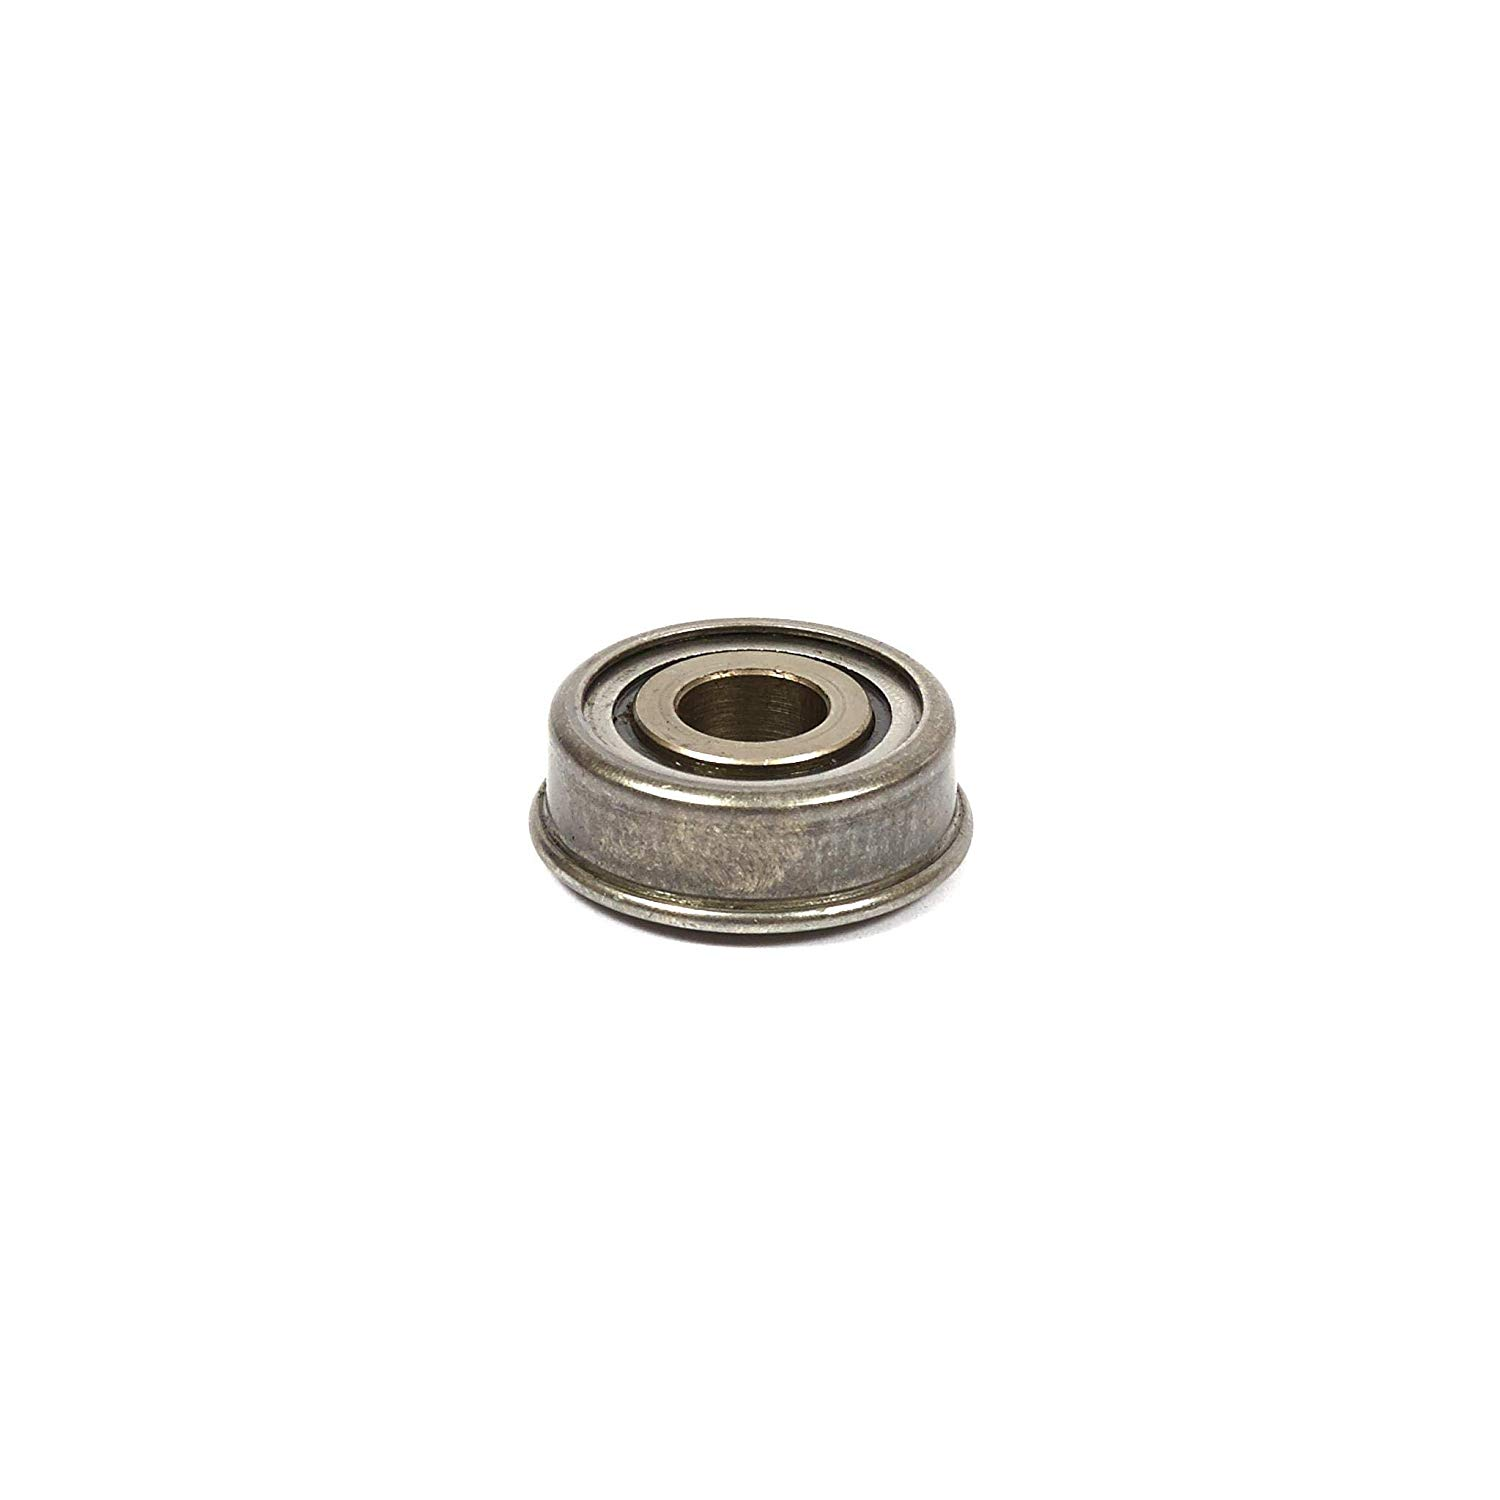 OREGON Bearing For Exmark # 631560, 513009